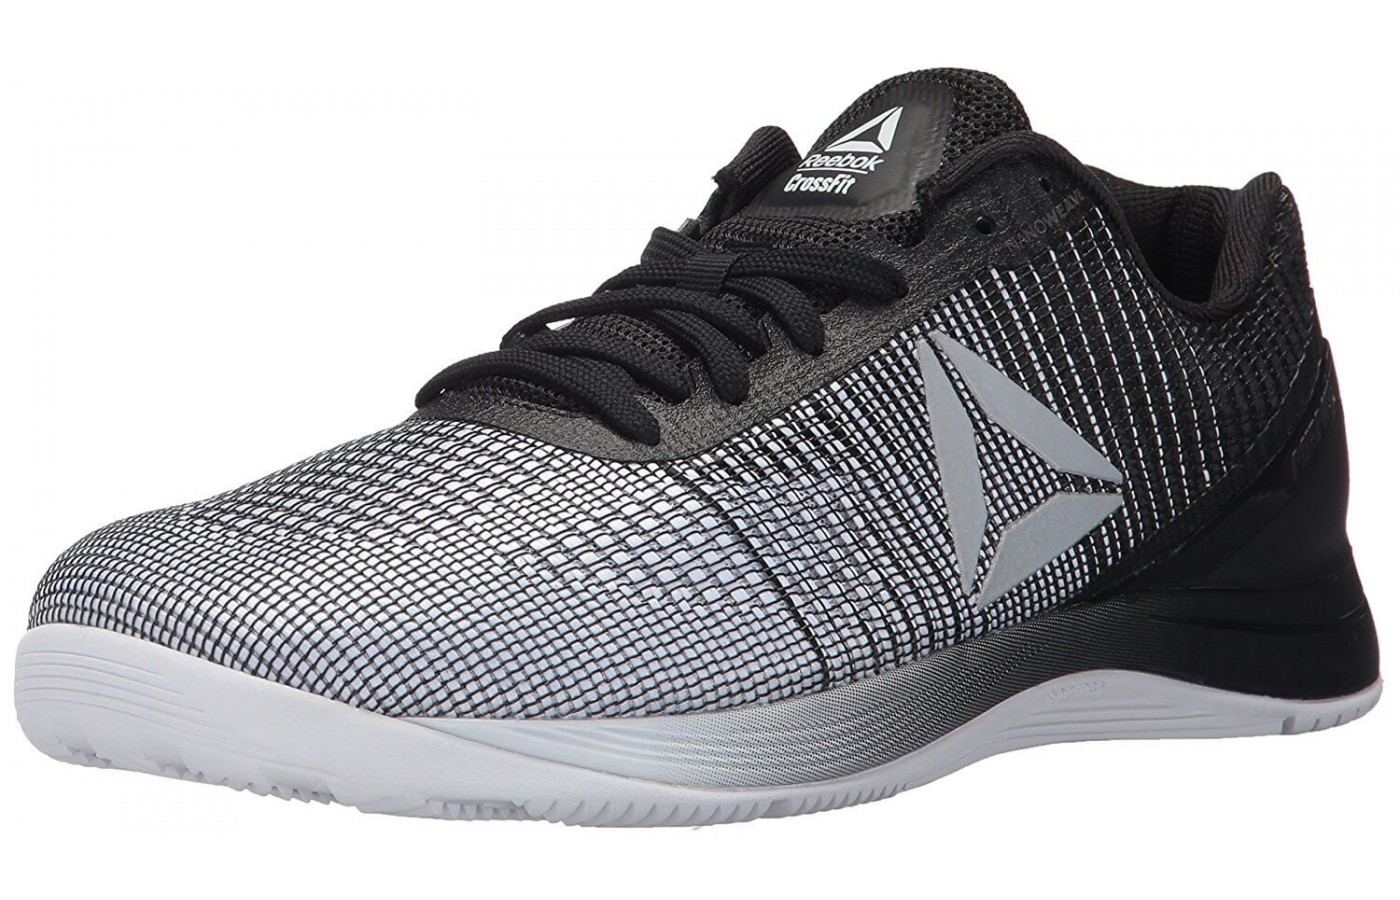 3b2f04778 The Reebok Crossfit Nano 7 Weave was designed to fix mistakes in the  original design.